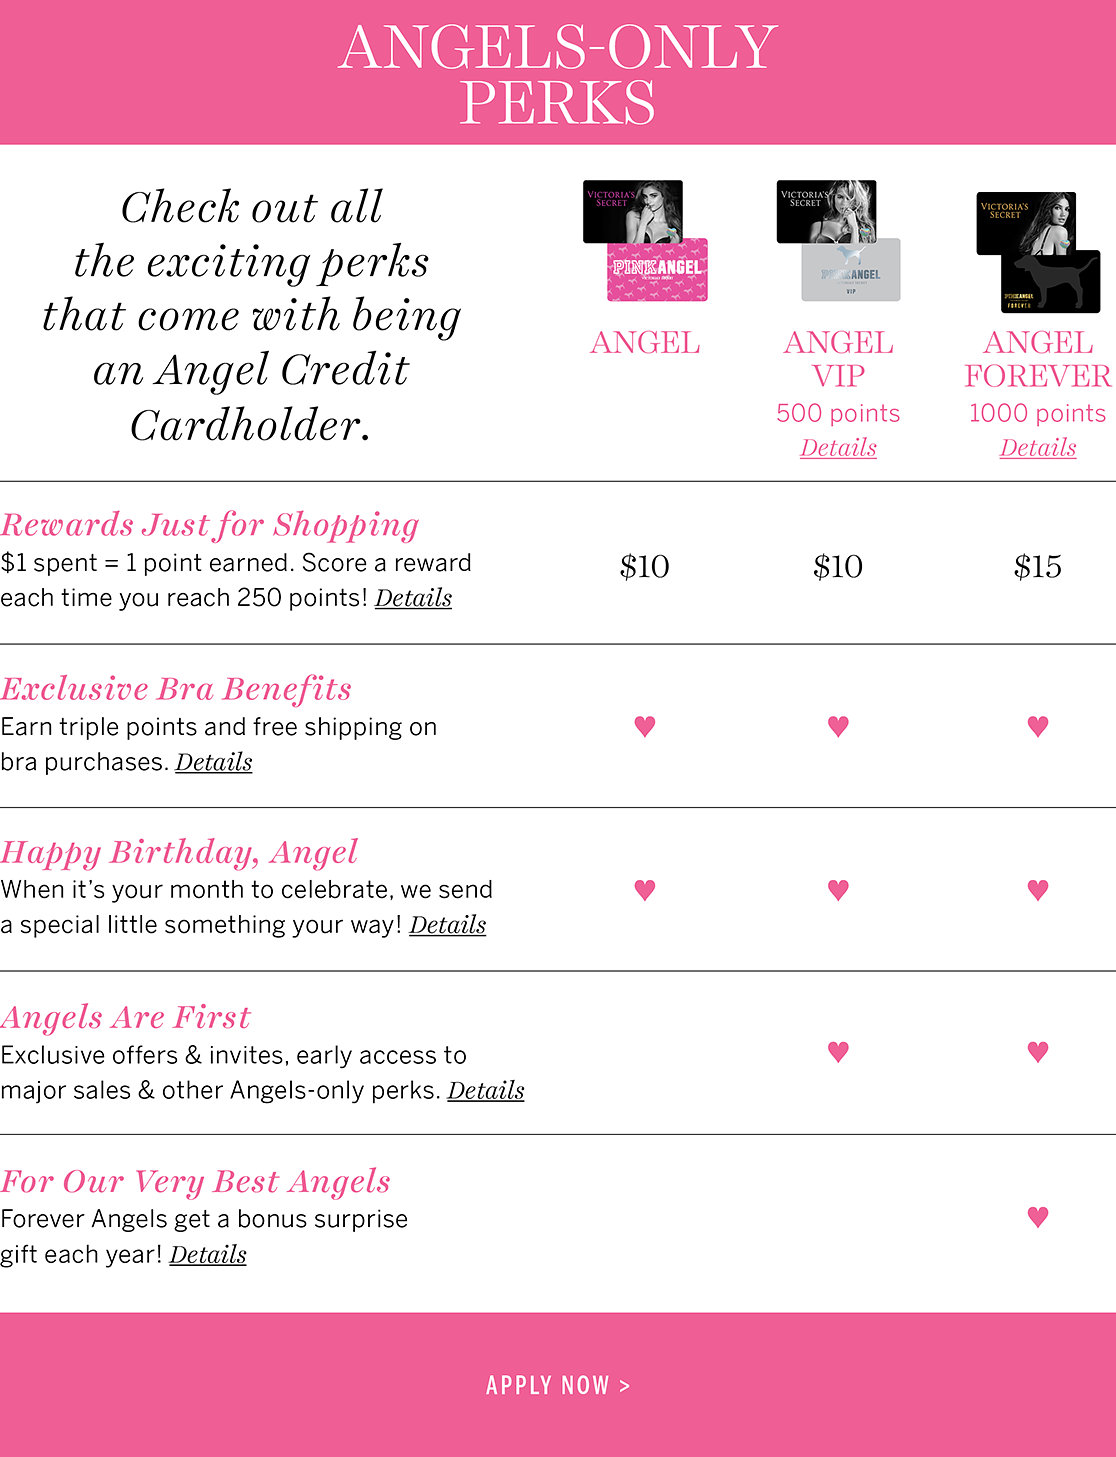 Angels Only Perks Check Out All The Exciting That Come With Being An Angel Credit Cardholder VIP